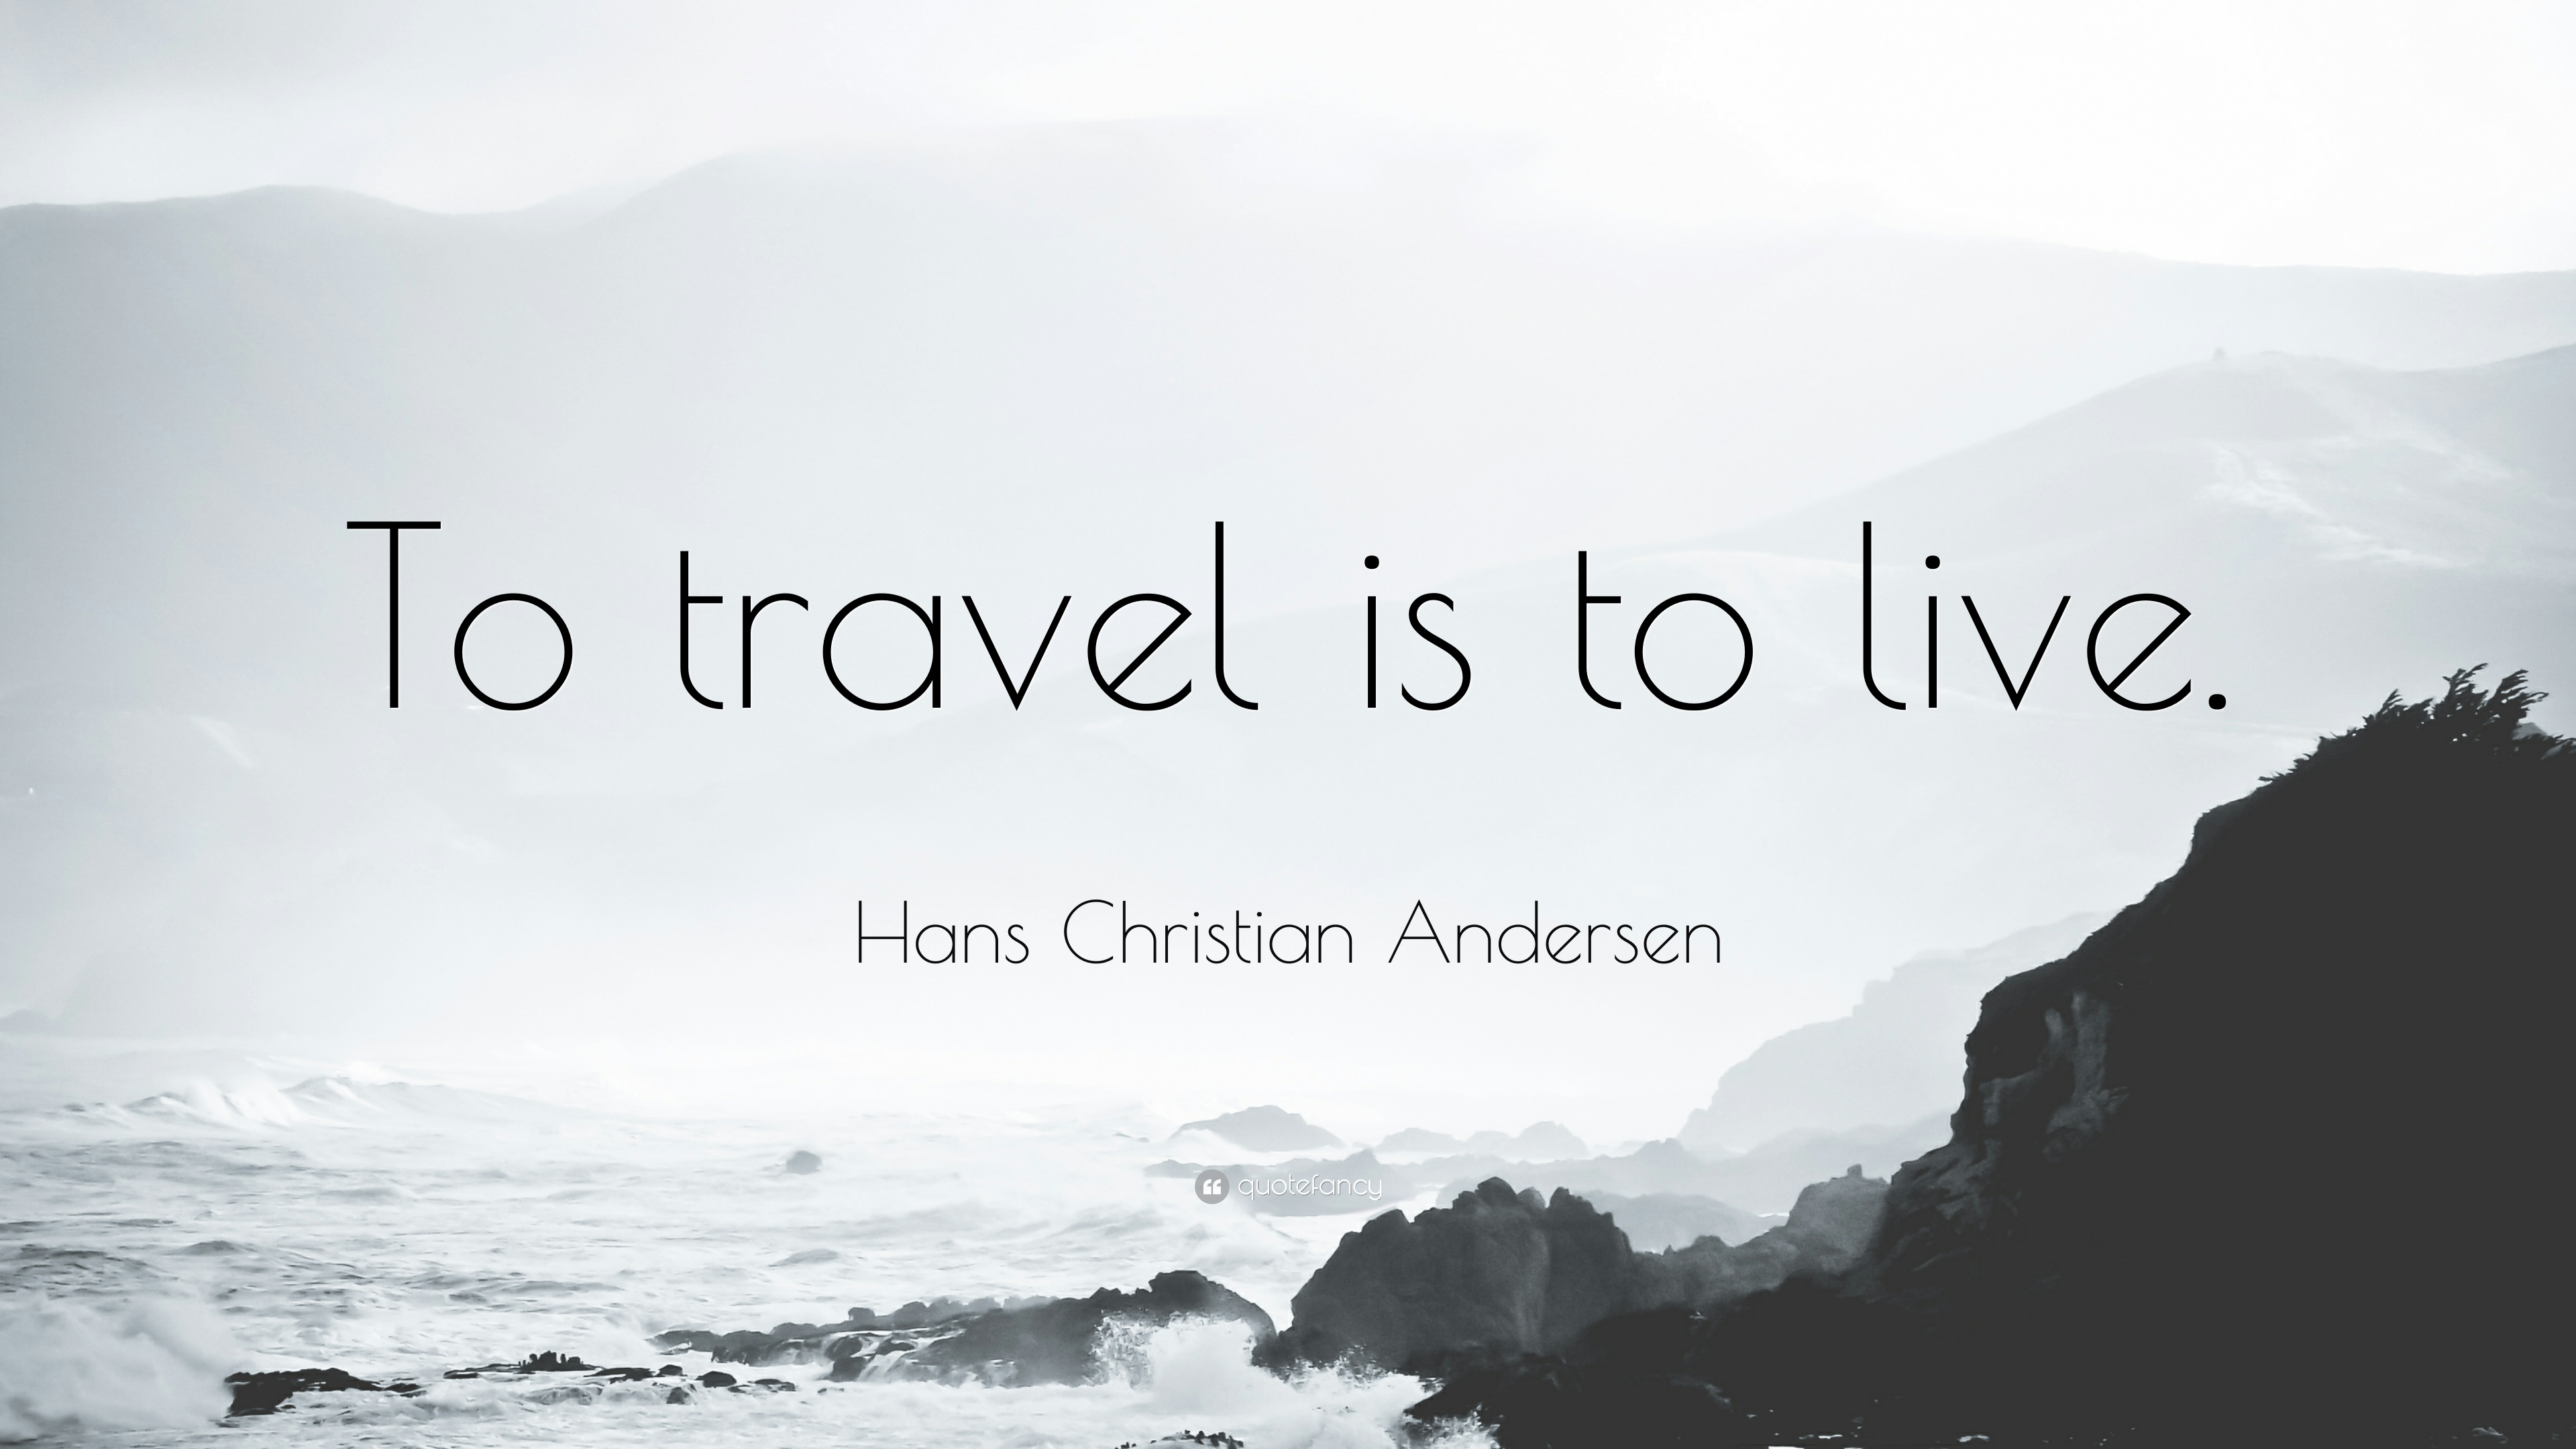 Hd Wallpapers Motivational Quotes Travel Quotes 40 Wallpapers Quotefancy